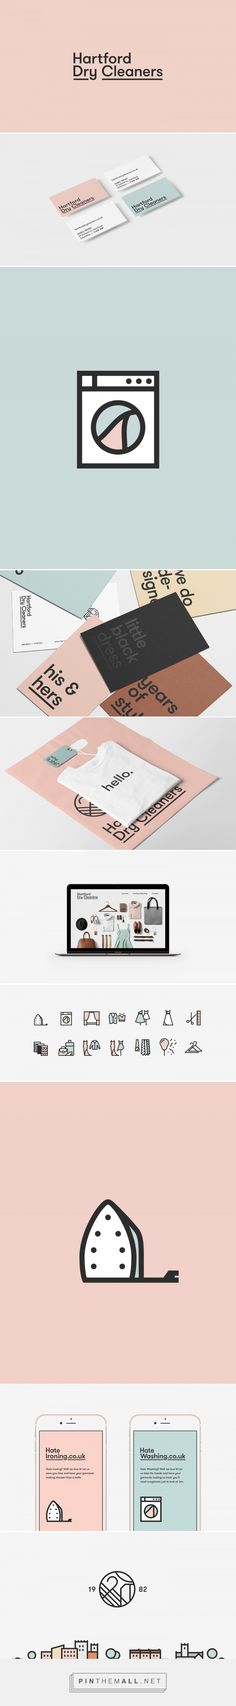 Hartford Dry Cleaners - Visual Identity + Website on Behance... - a grouped images picture - Pin Them All